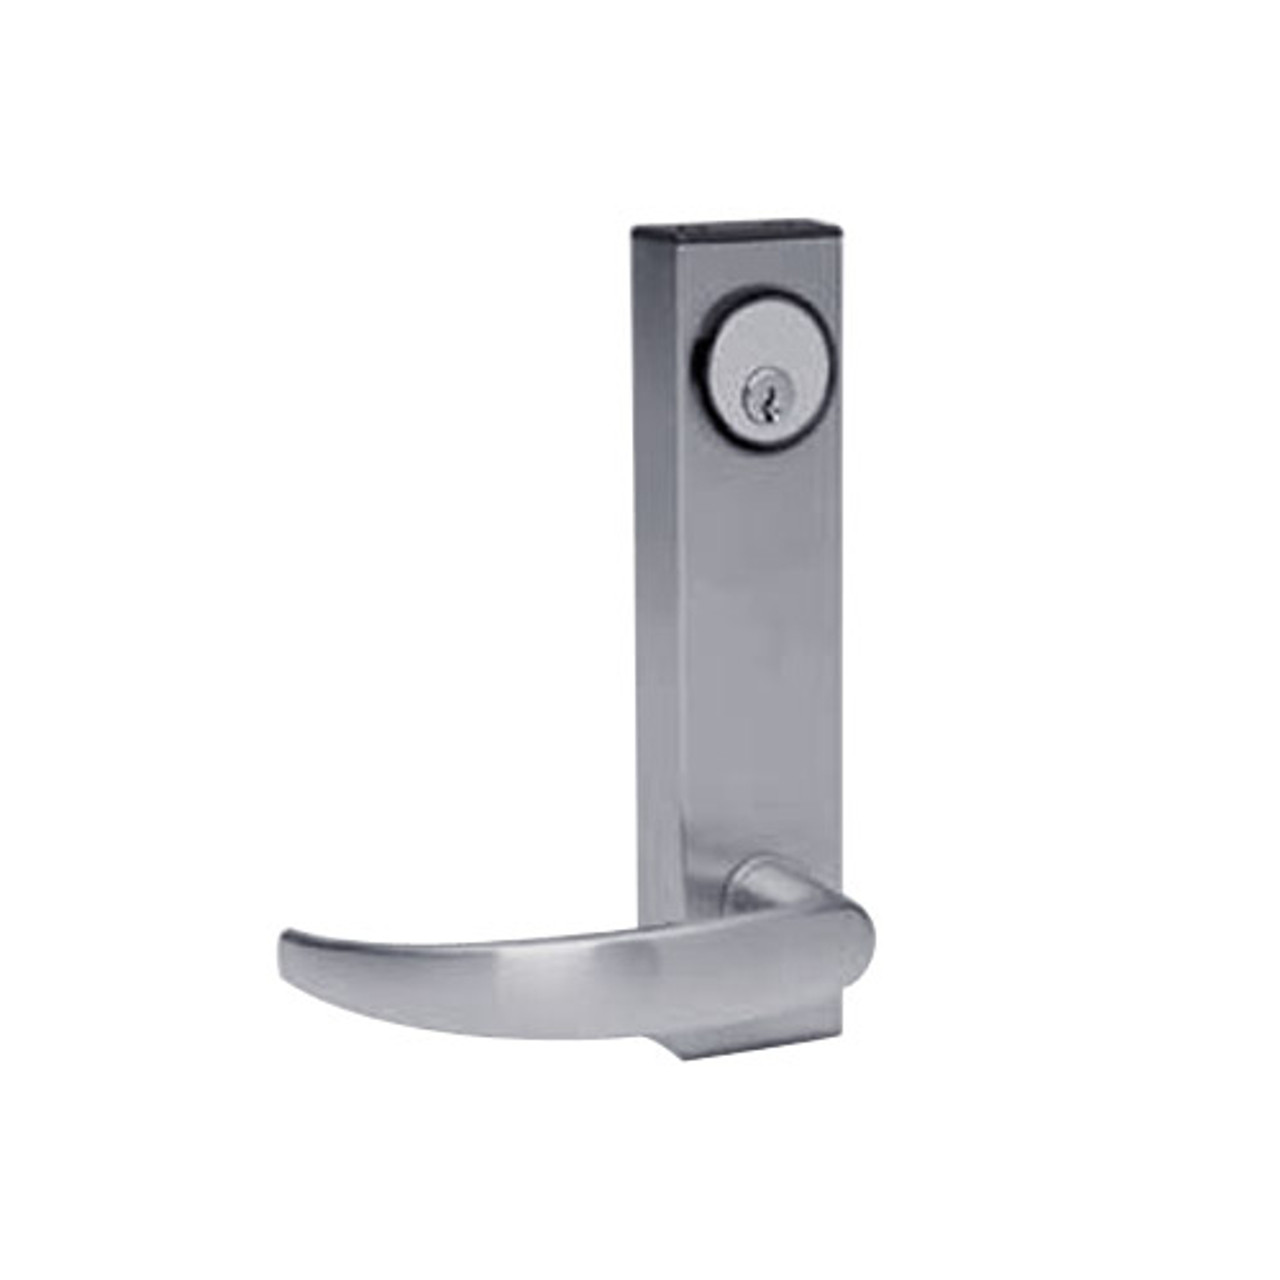 3080E-01-0-94-35 US32D Adams Rite Electrified Entry Trim with Curve Lever in Satin Stainless Finish